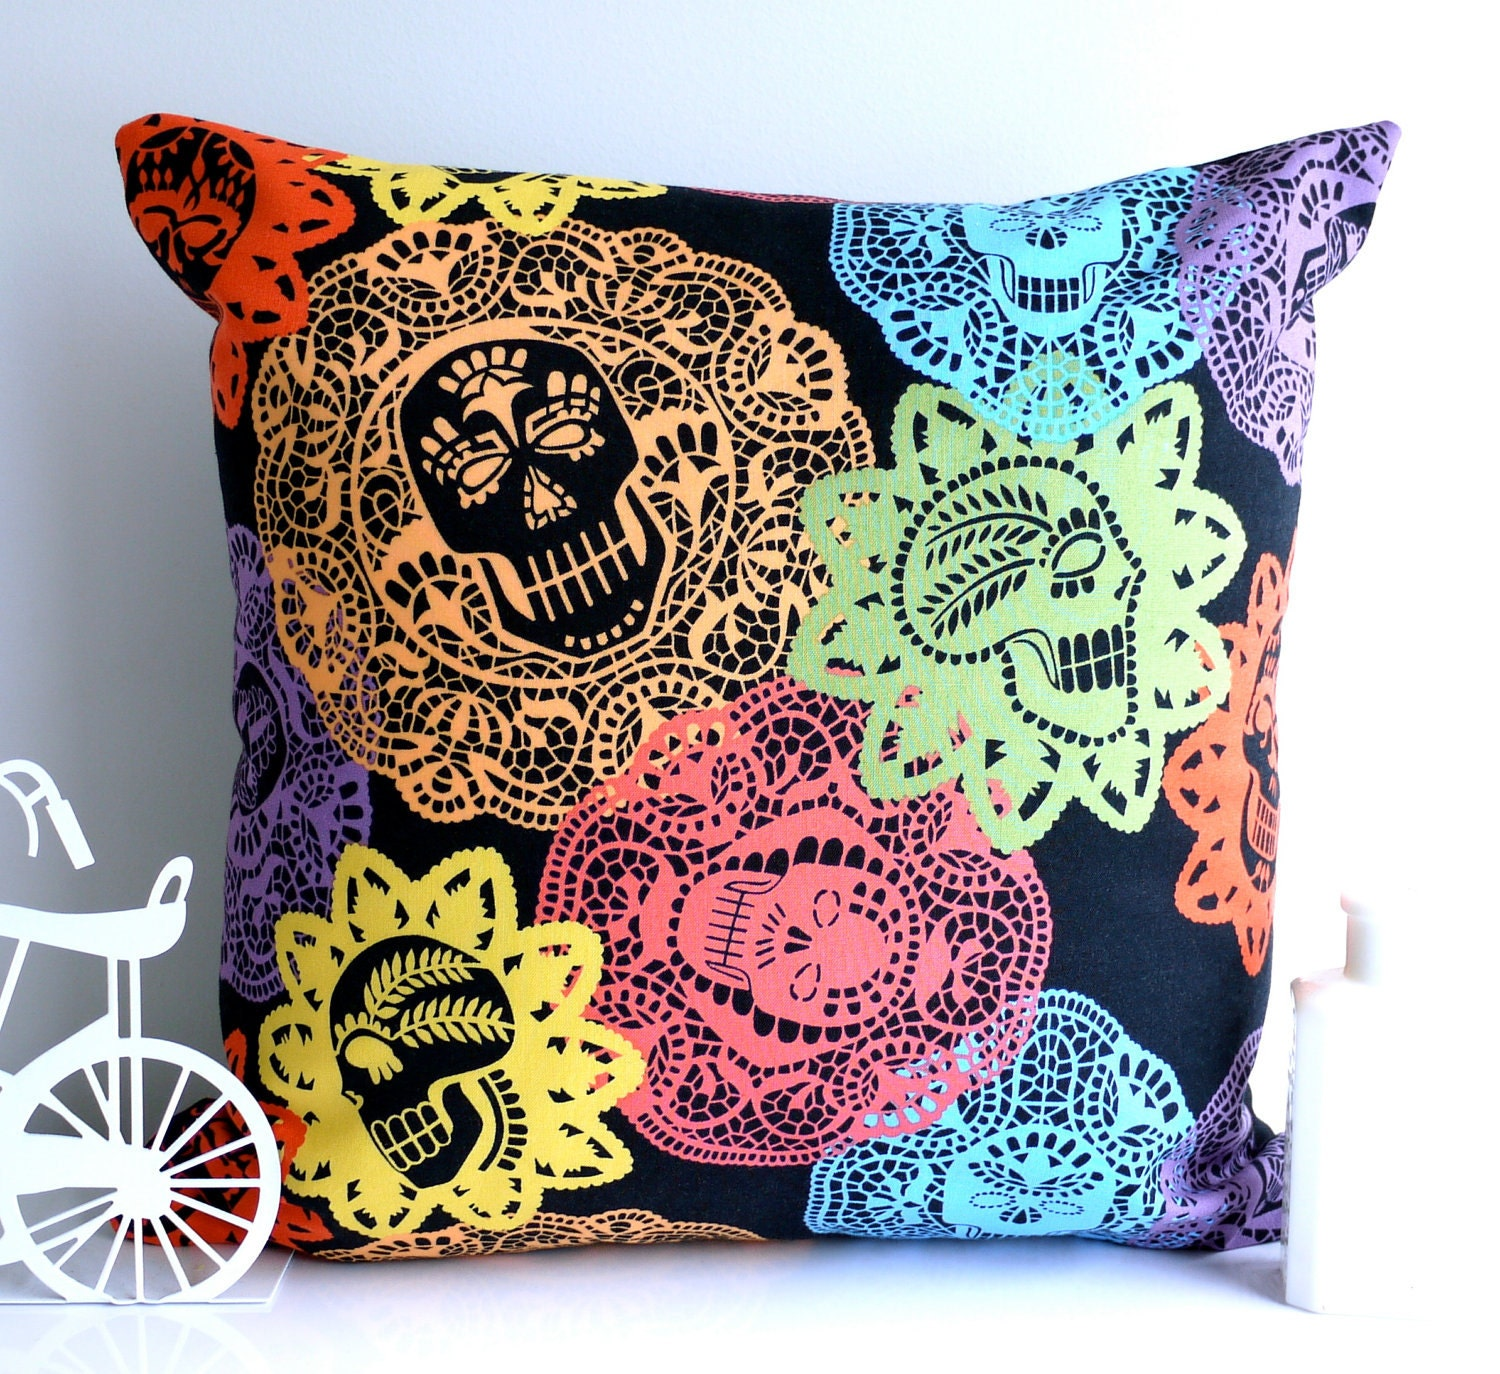 A Skull Cushion – Craftbnb